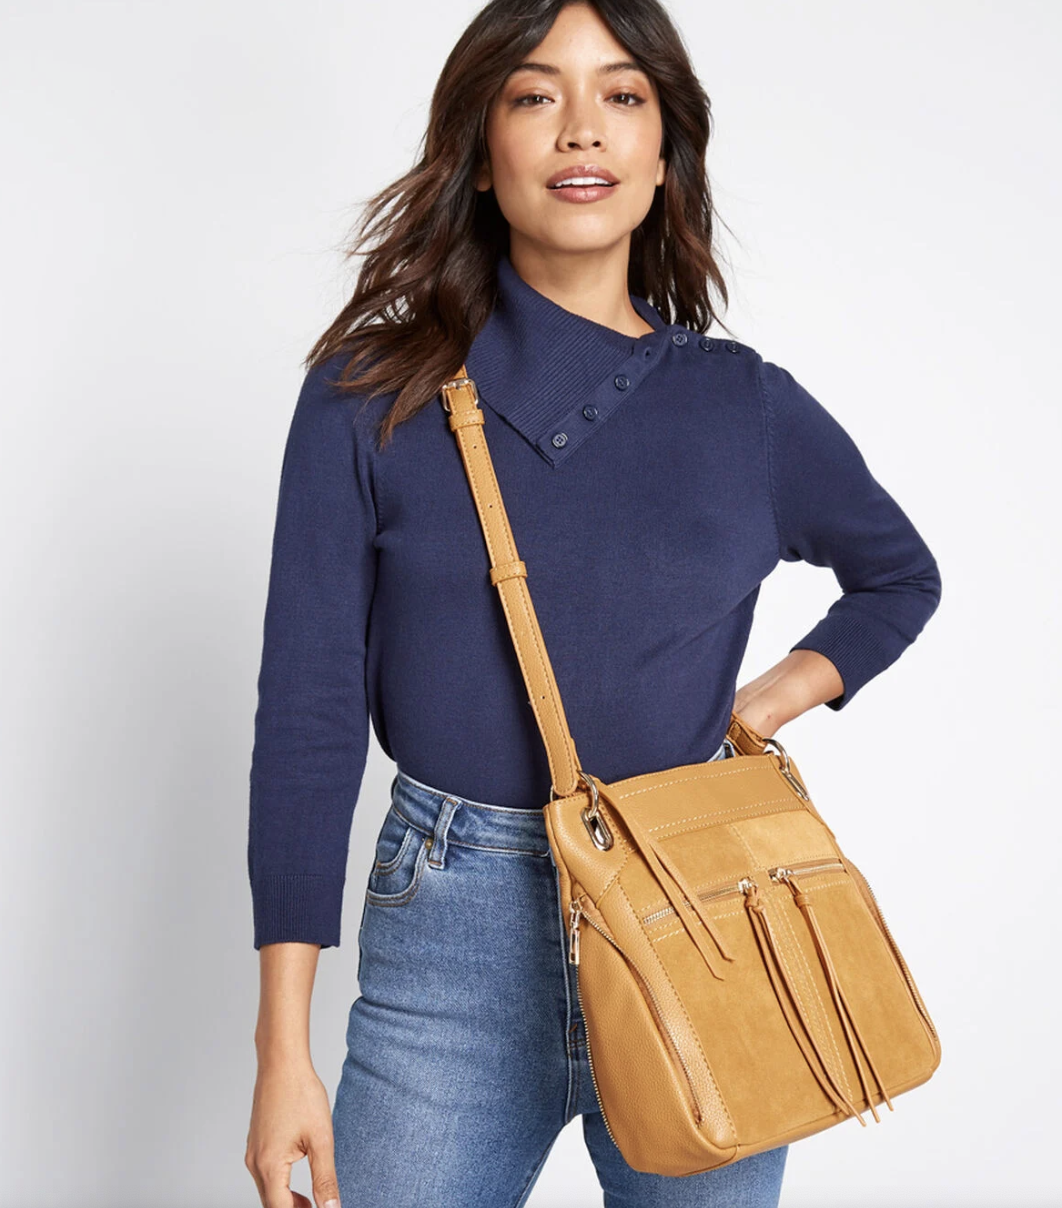 Model with a yellow cross body messenger bag with tasseled zippered front pockets